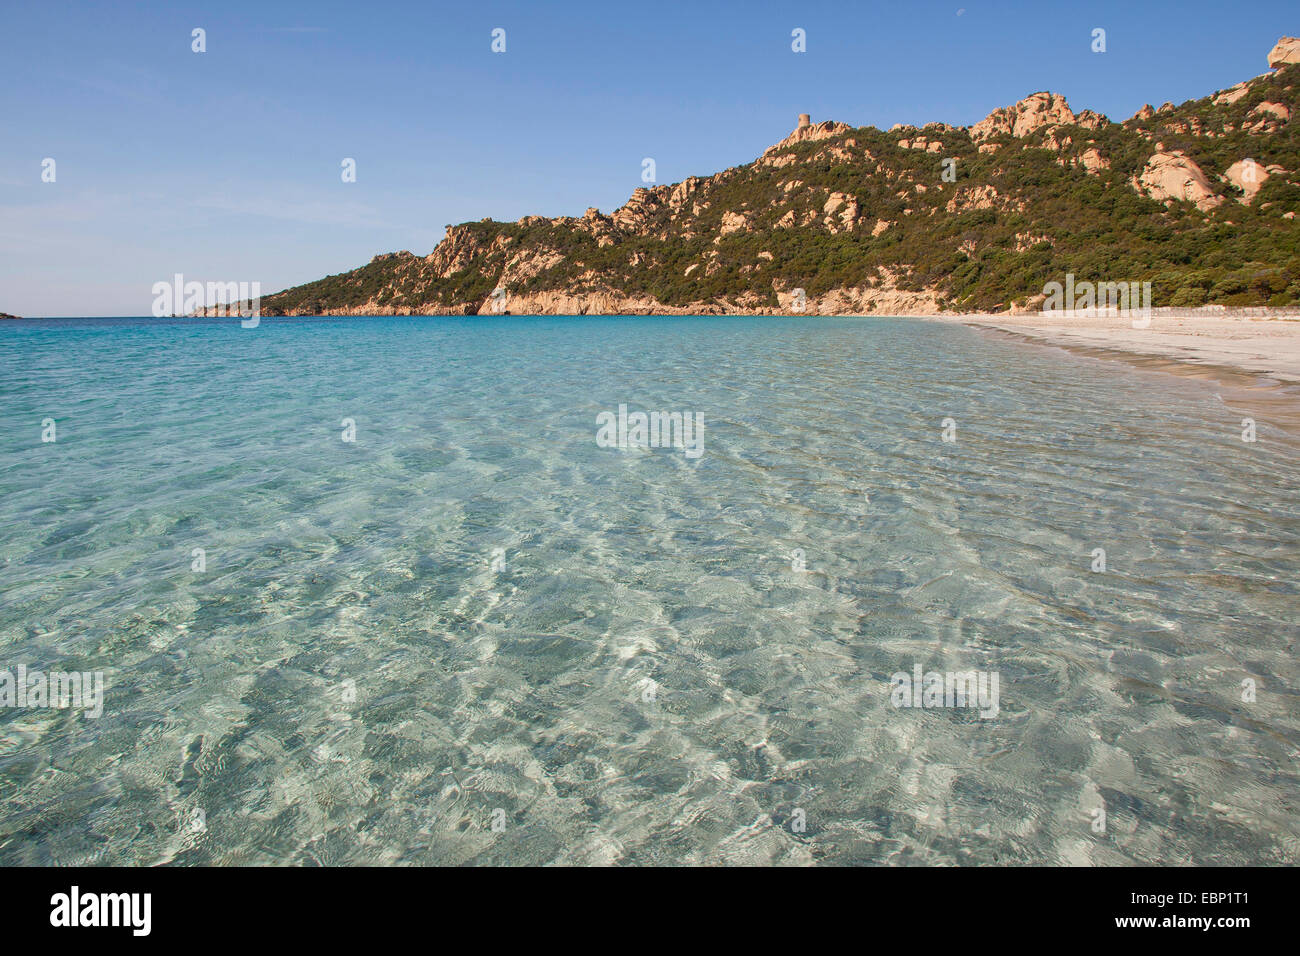 Paysages de la côte de la Corse, Corse, France Photo Stock